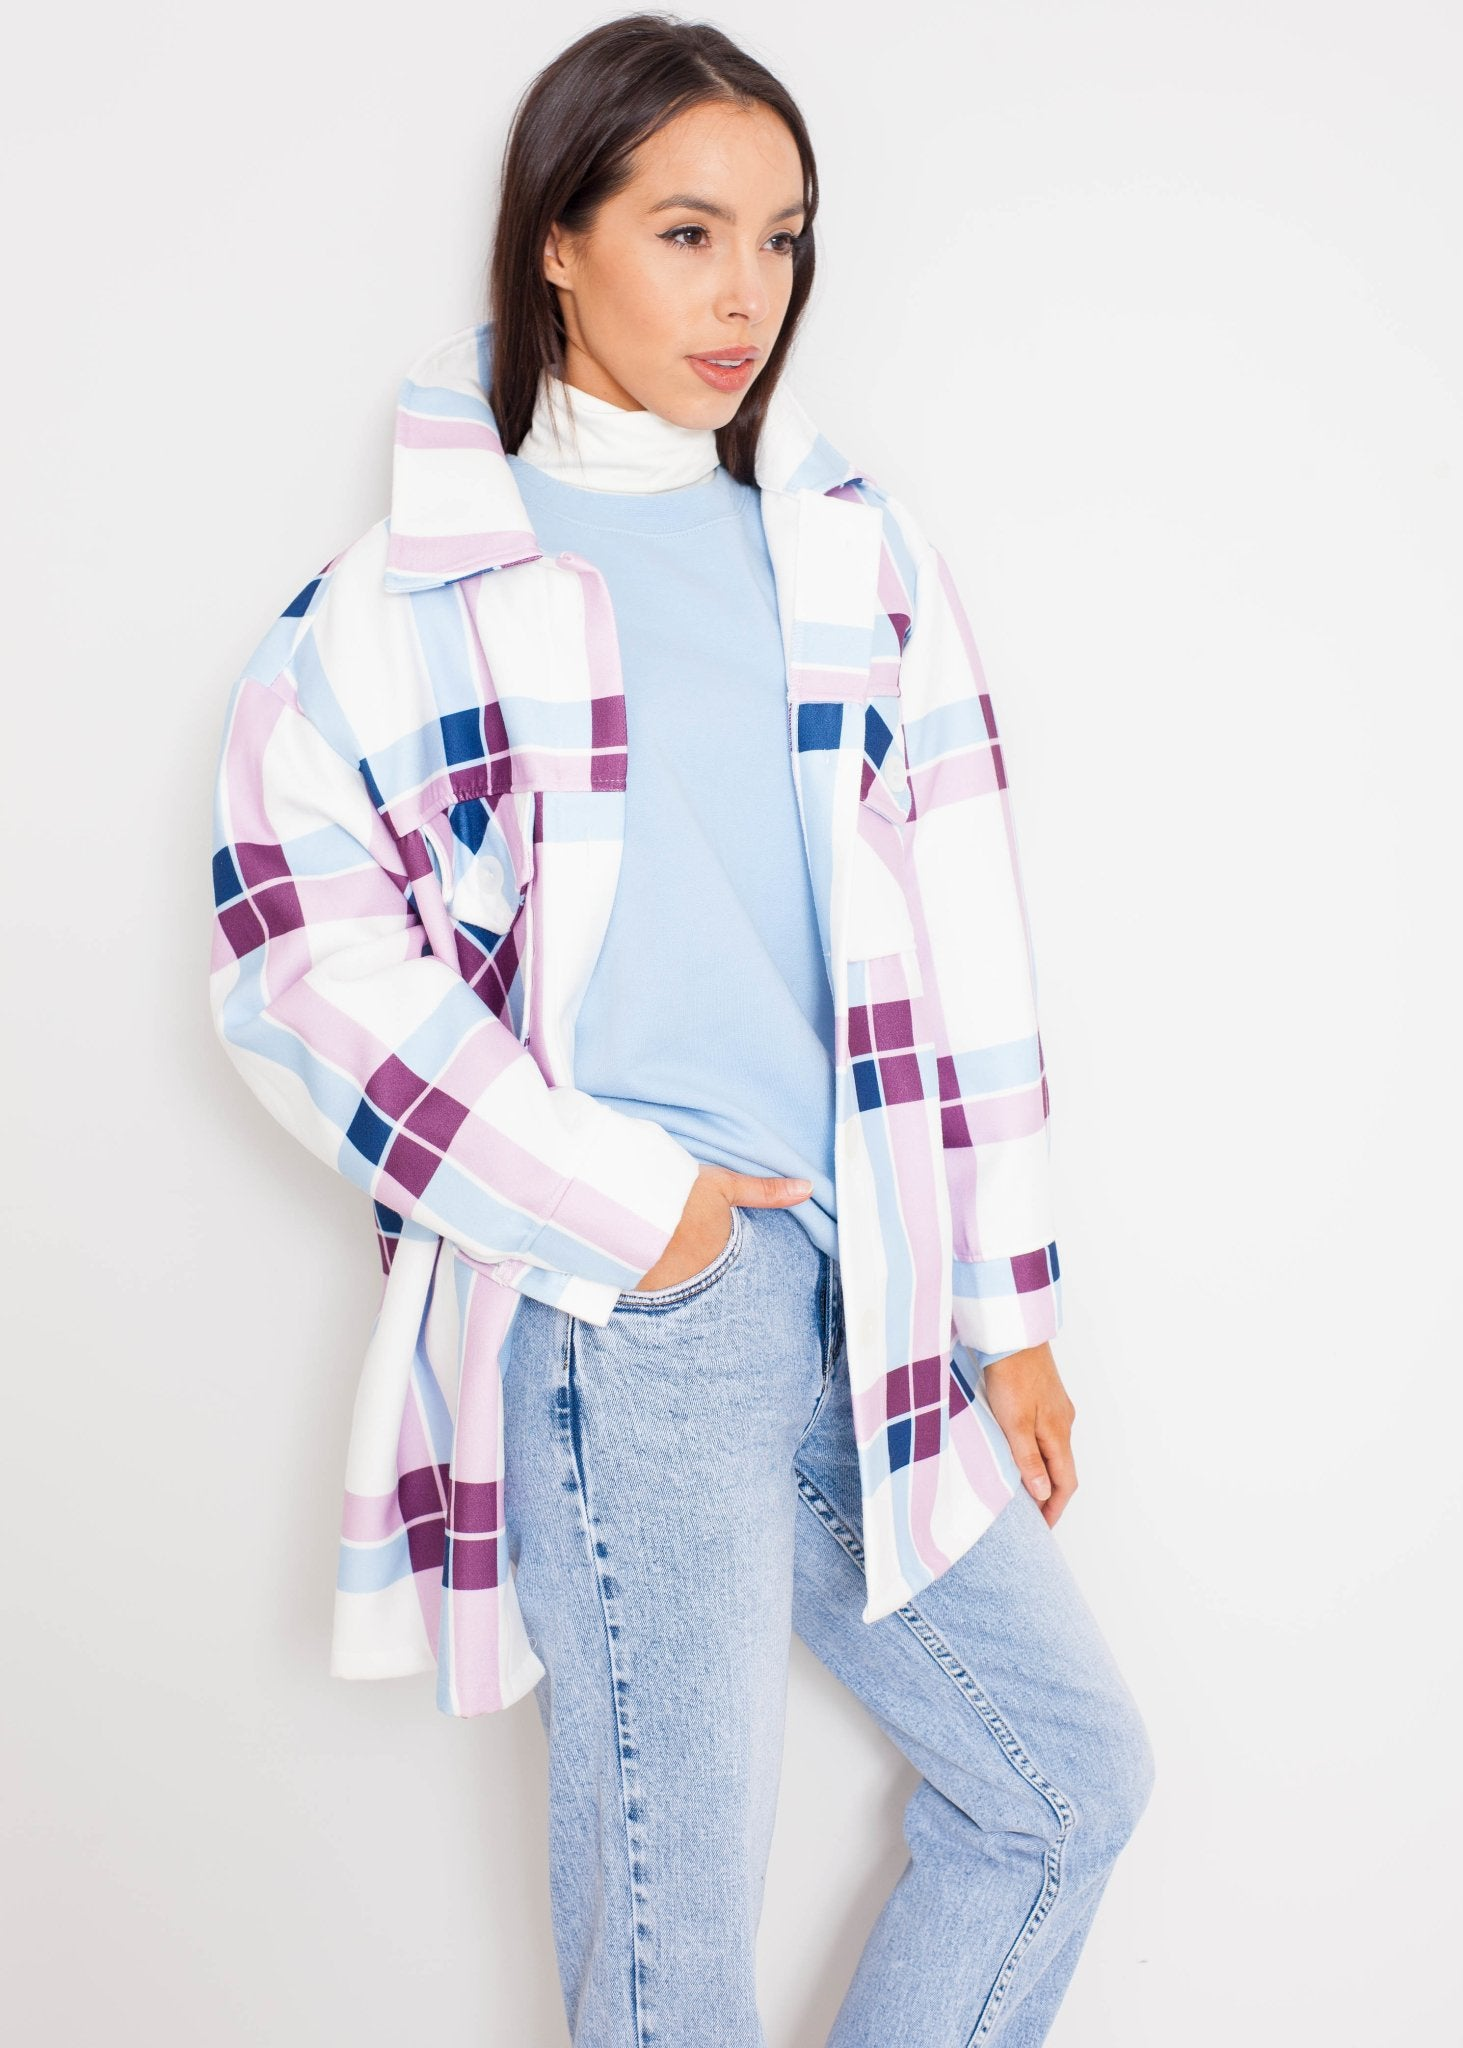 Indie Check Shacket In White & Pastel - The Walk in Wardrobe